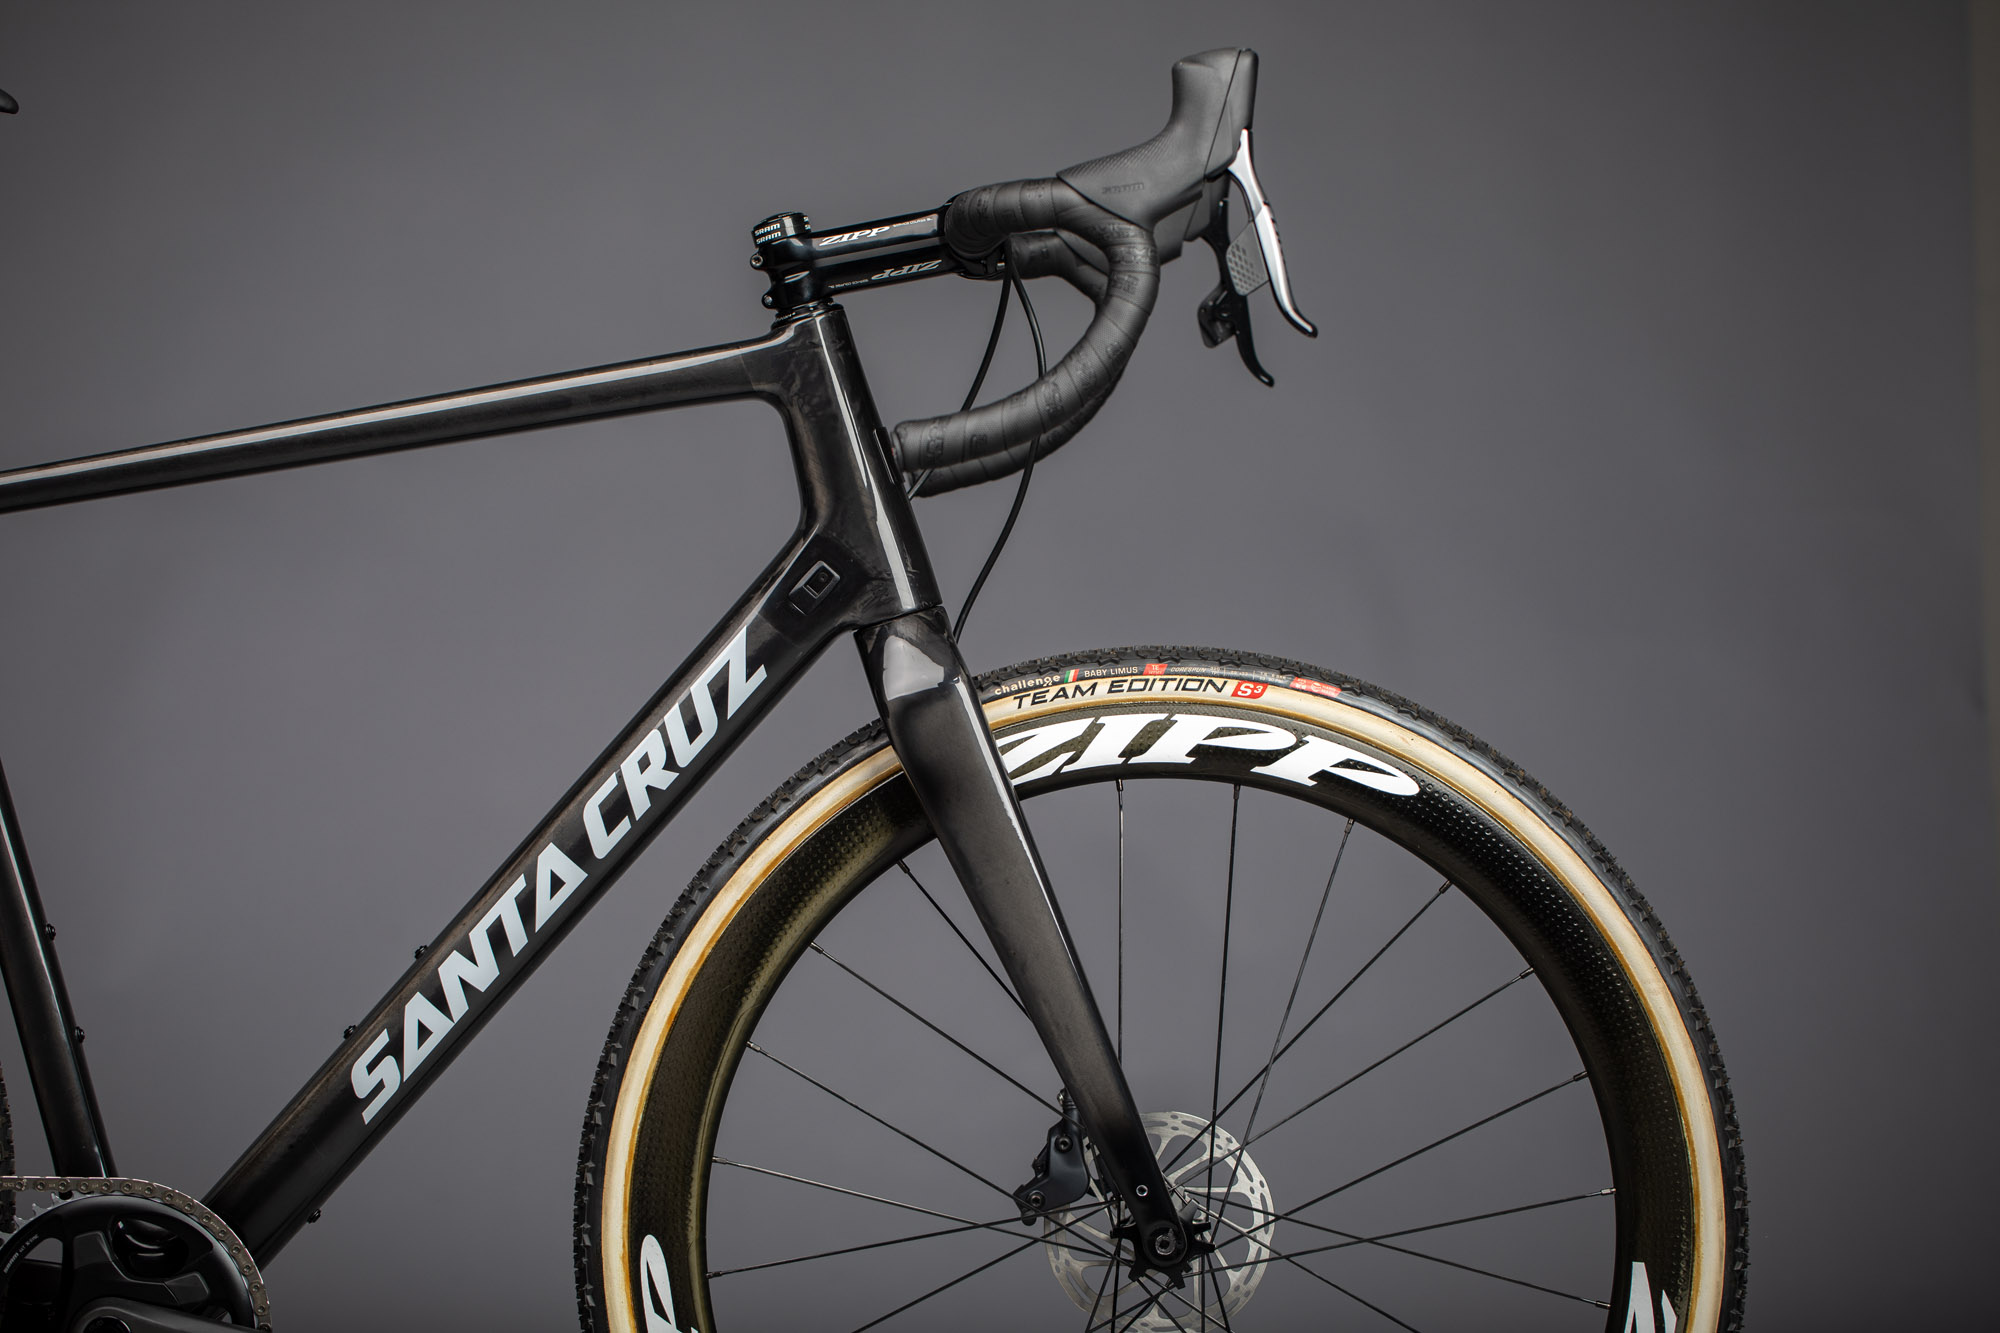 Santa Cruz Bicycles - Tobin Ortenblad's Custom Stigmata Cyclocross Race Bike